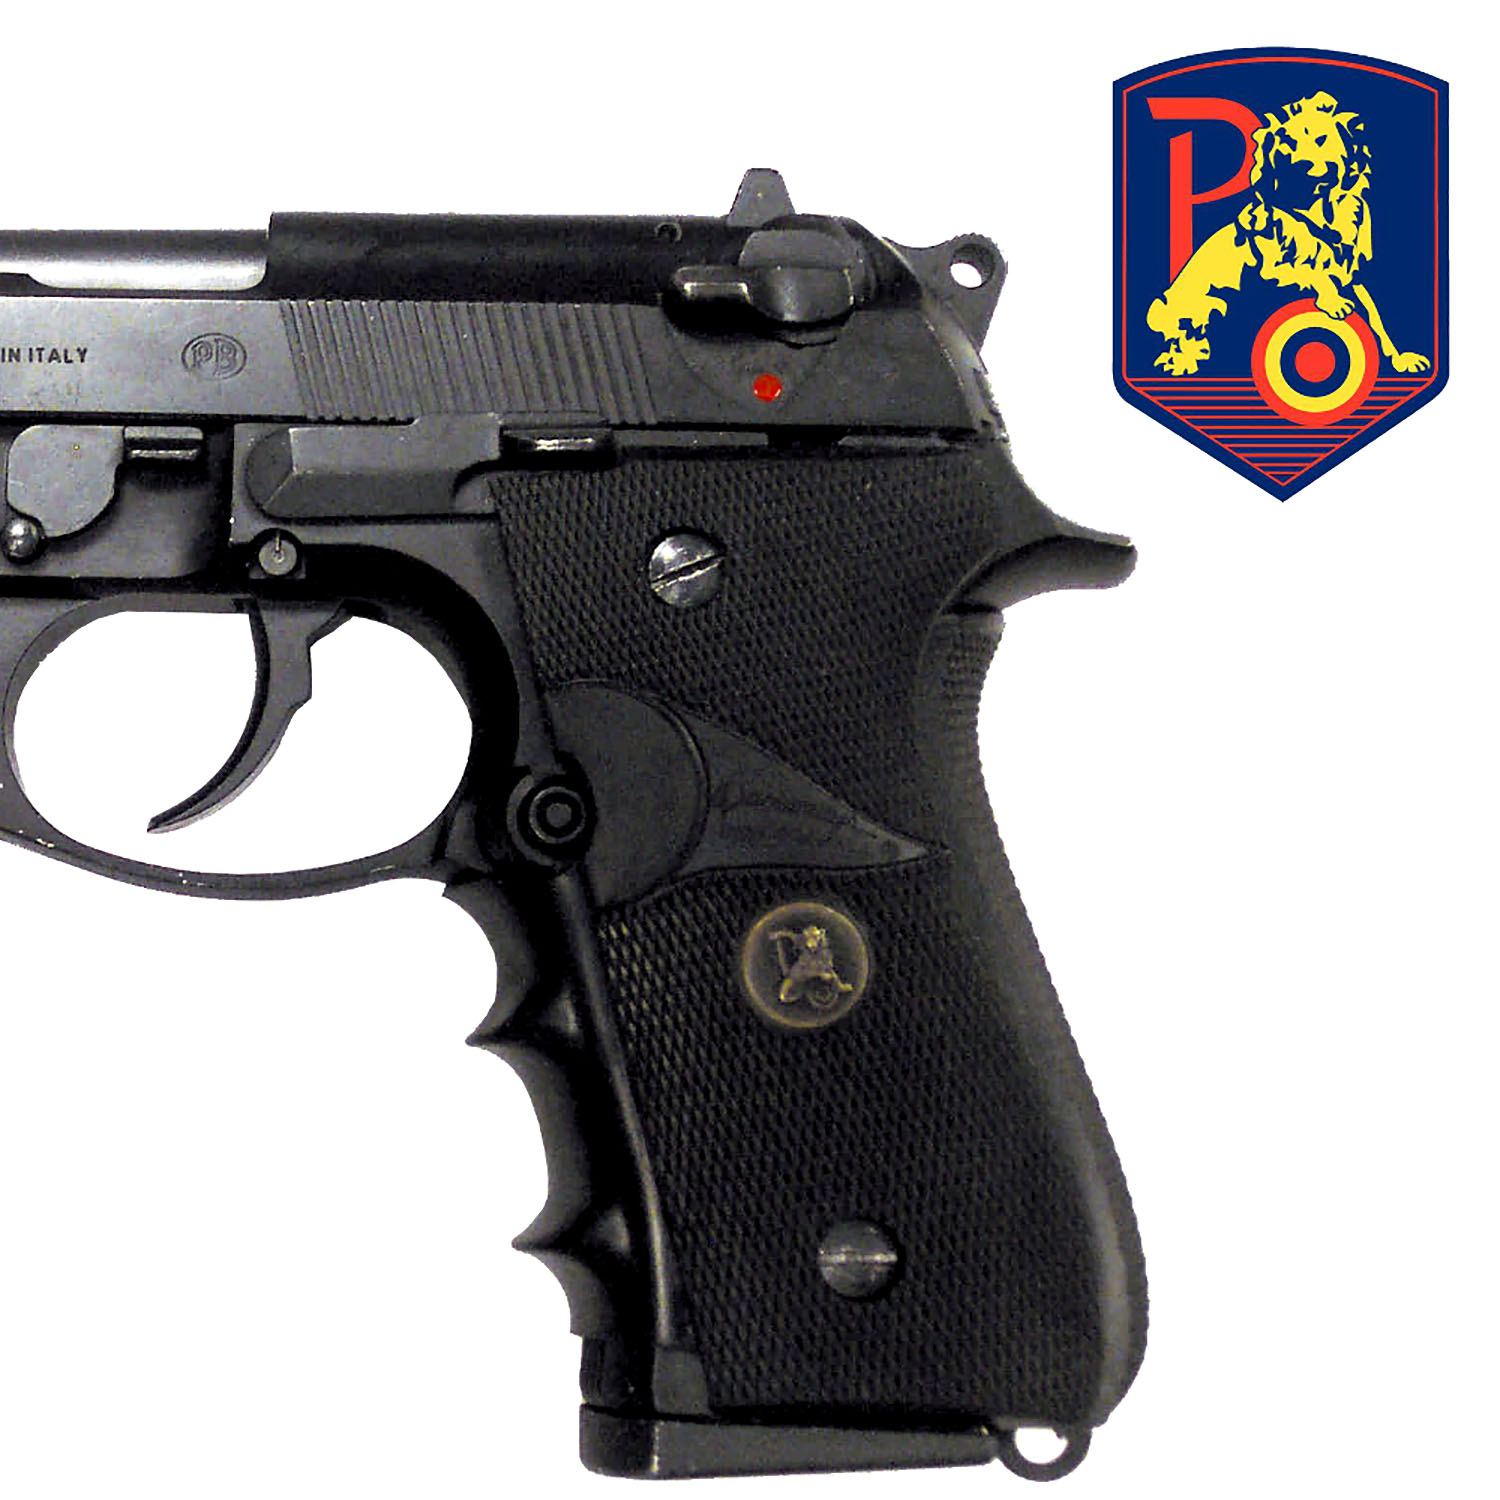 Pachmayr Signature Grips, With Back Straps: Midwest Gun Works